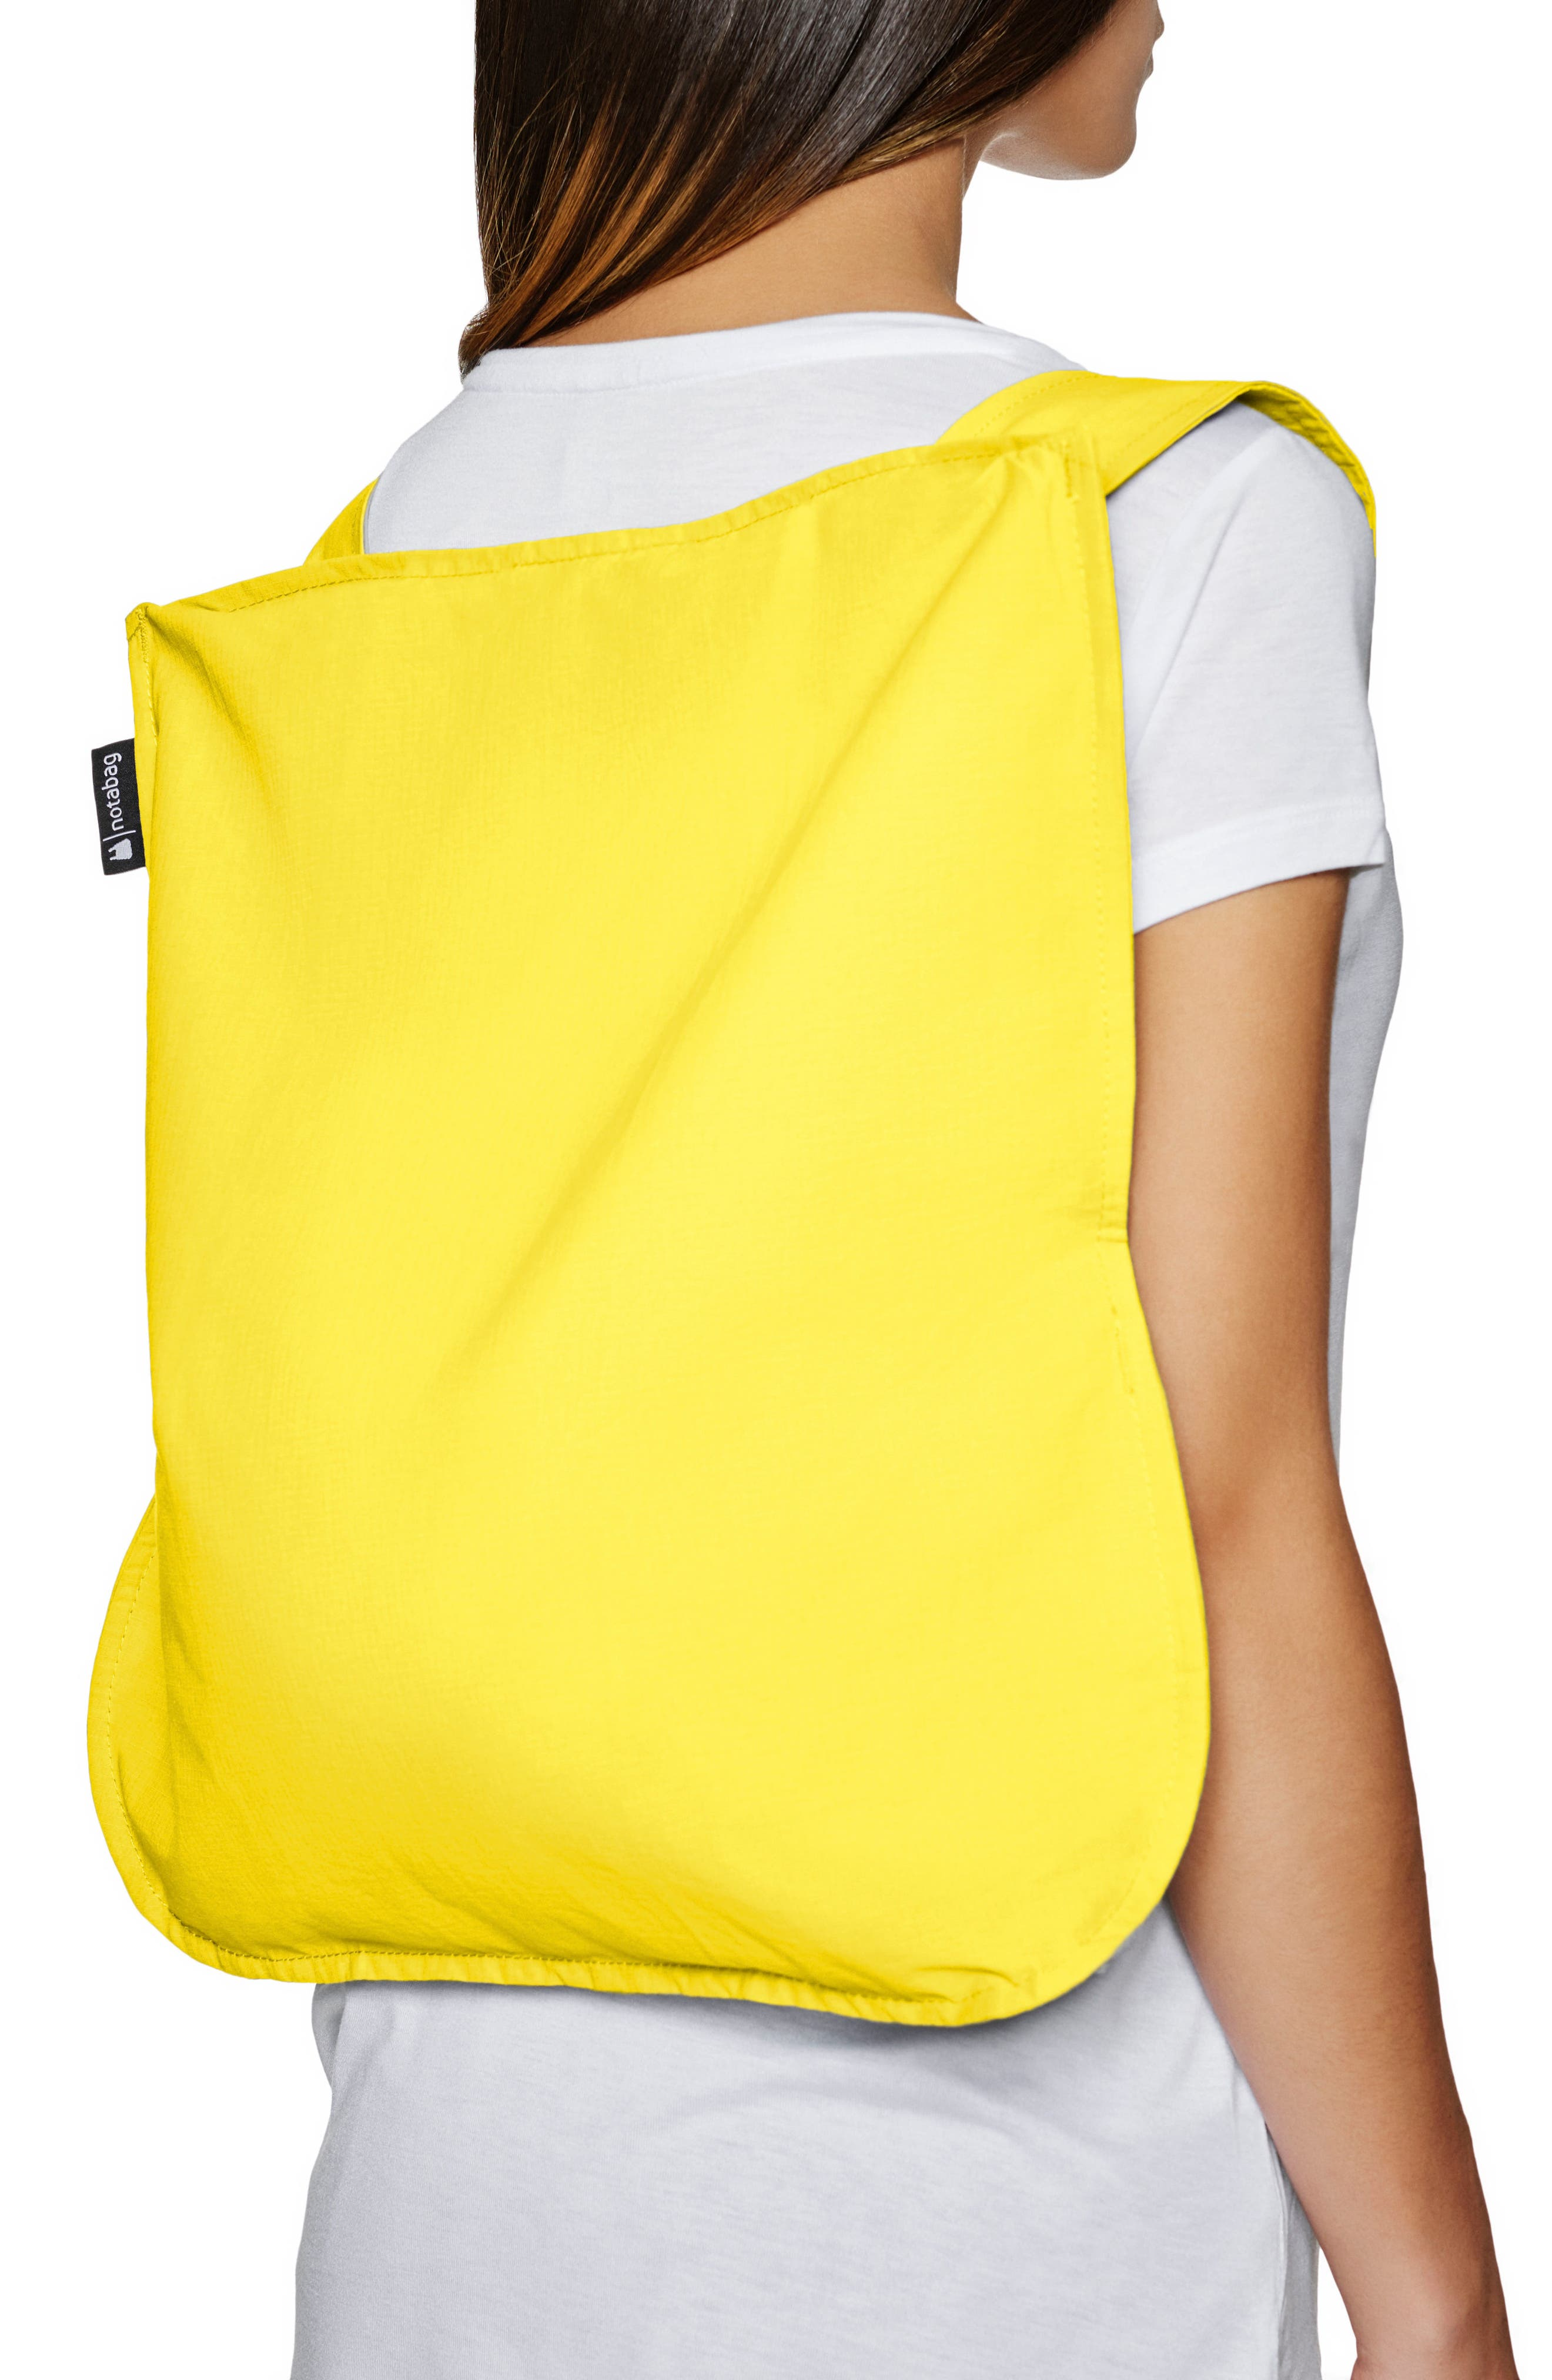 Convertible Tote Backpack,                             Alternate thumbnail 2, color,                             YELLOW